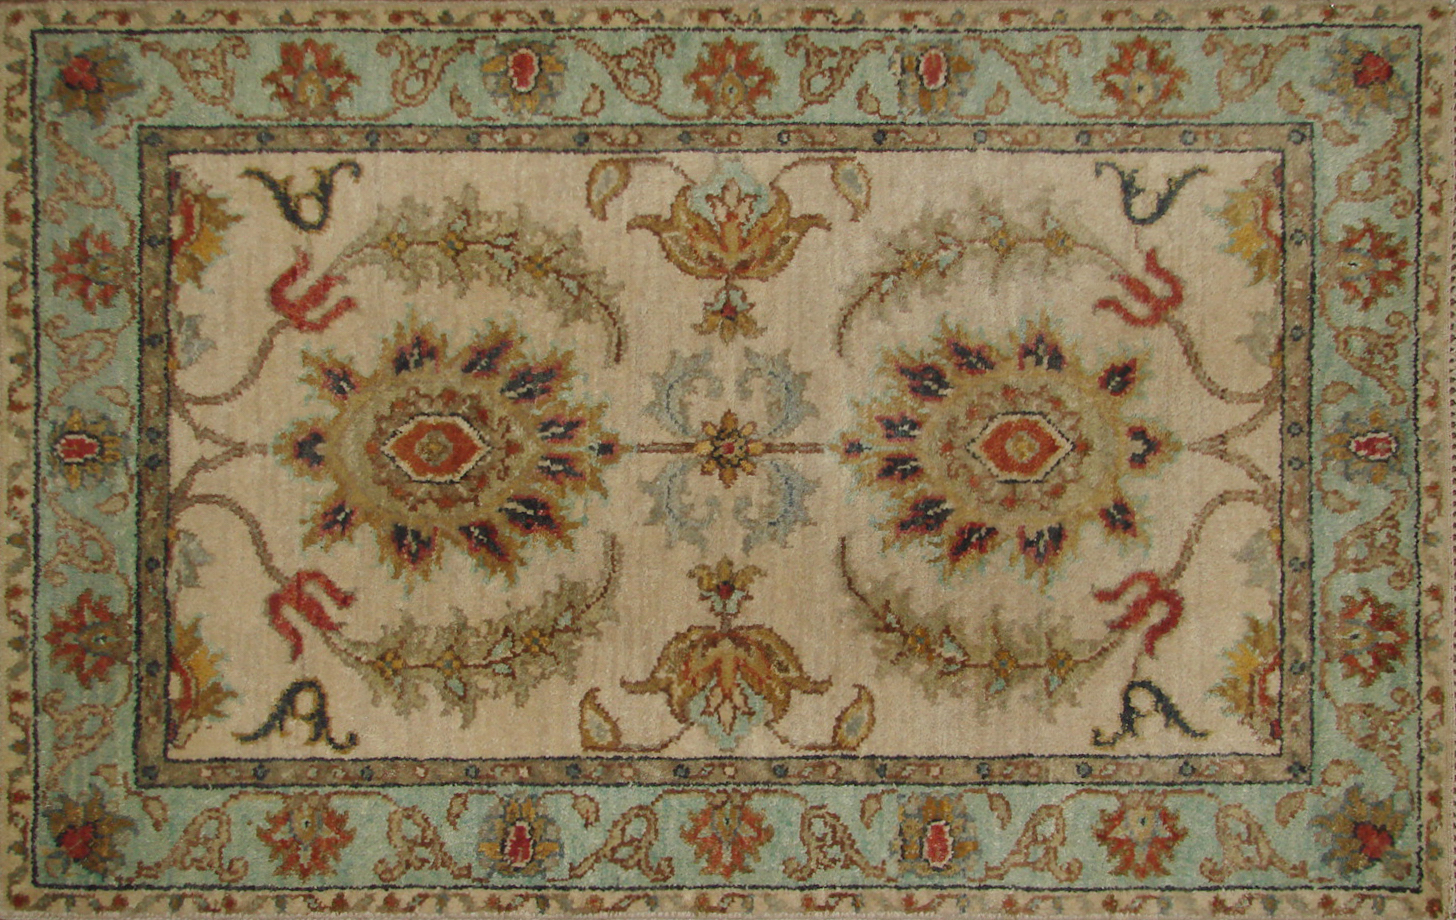 2X3 Traditional Hand Knotted Wool Area Rug - MR19874